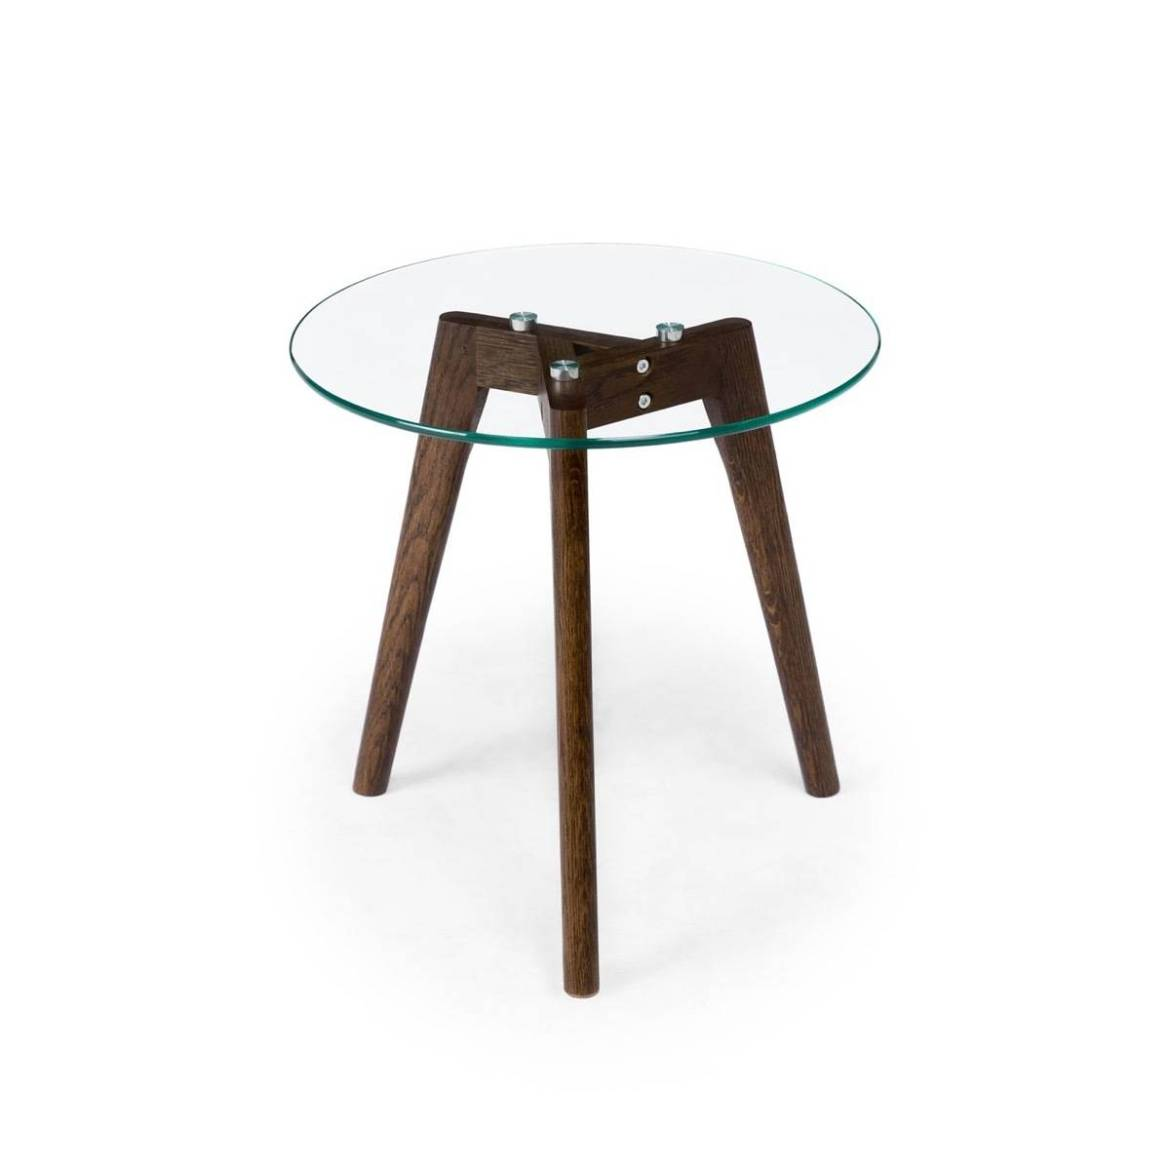 Walnut side table from Article